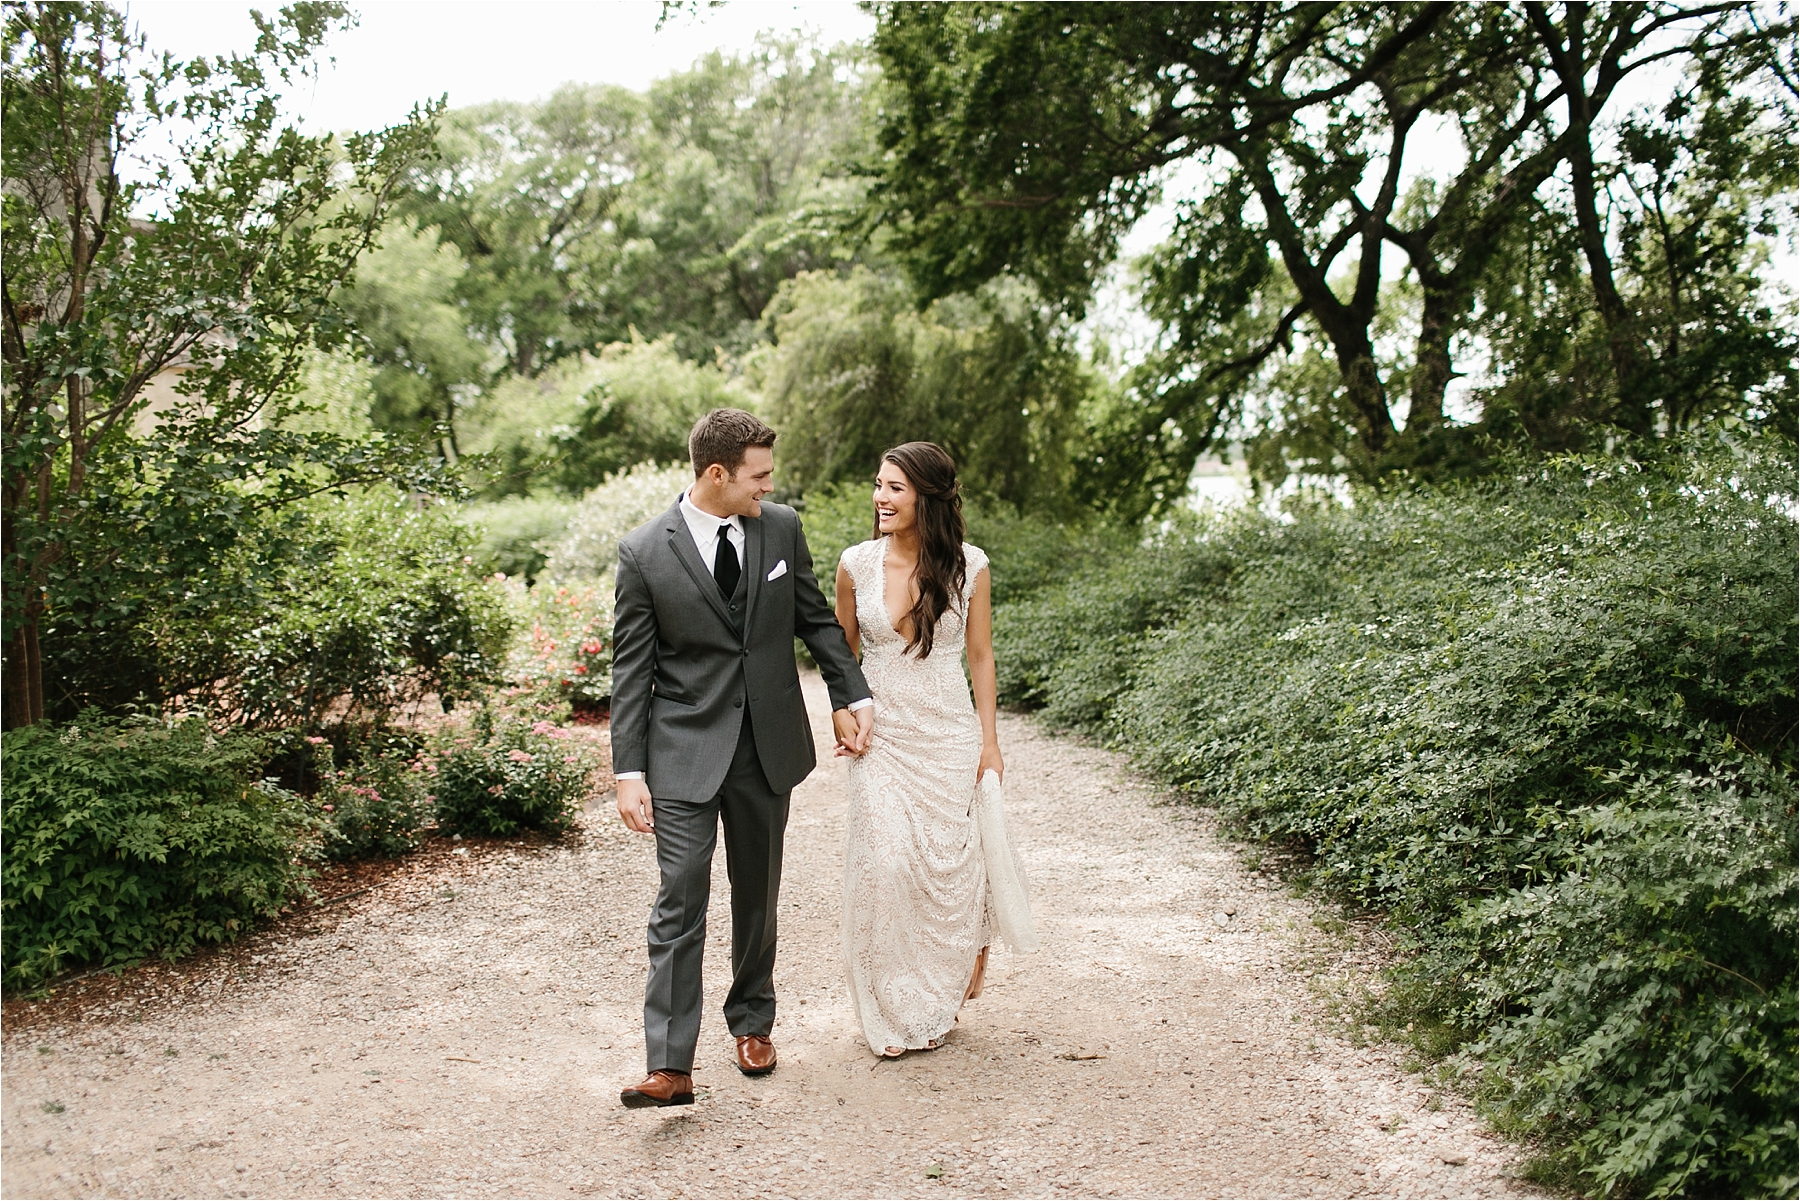 Devyn + Caden __ a Dallas Arboretum Garden Style Wedding by North Texas Wedding Photographer Rachel Meagan Photography __ 034